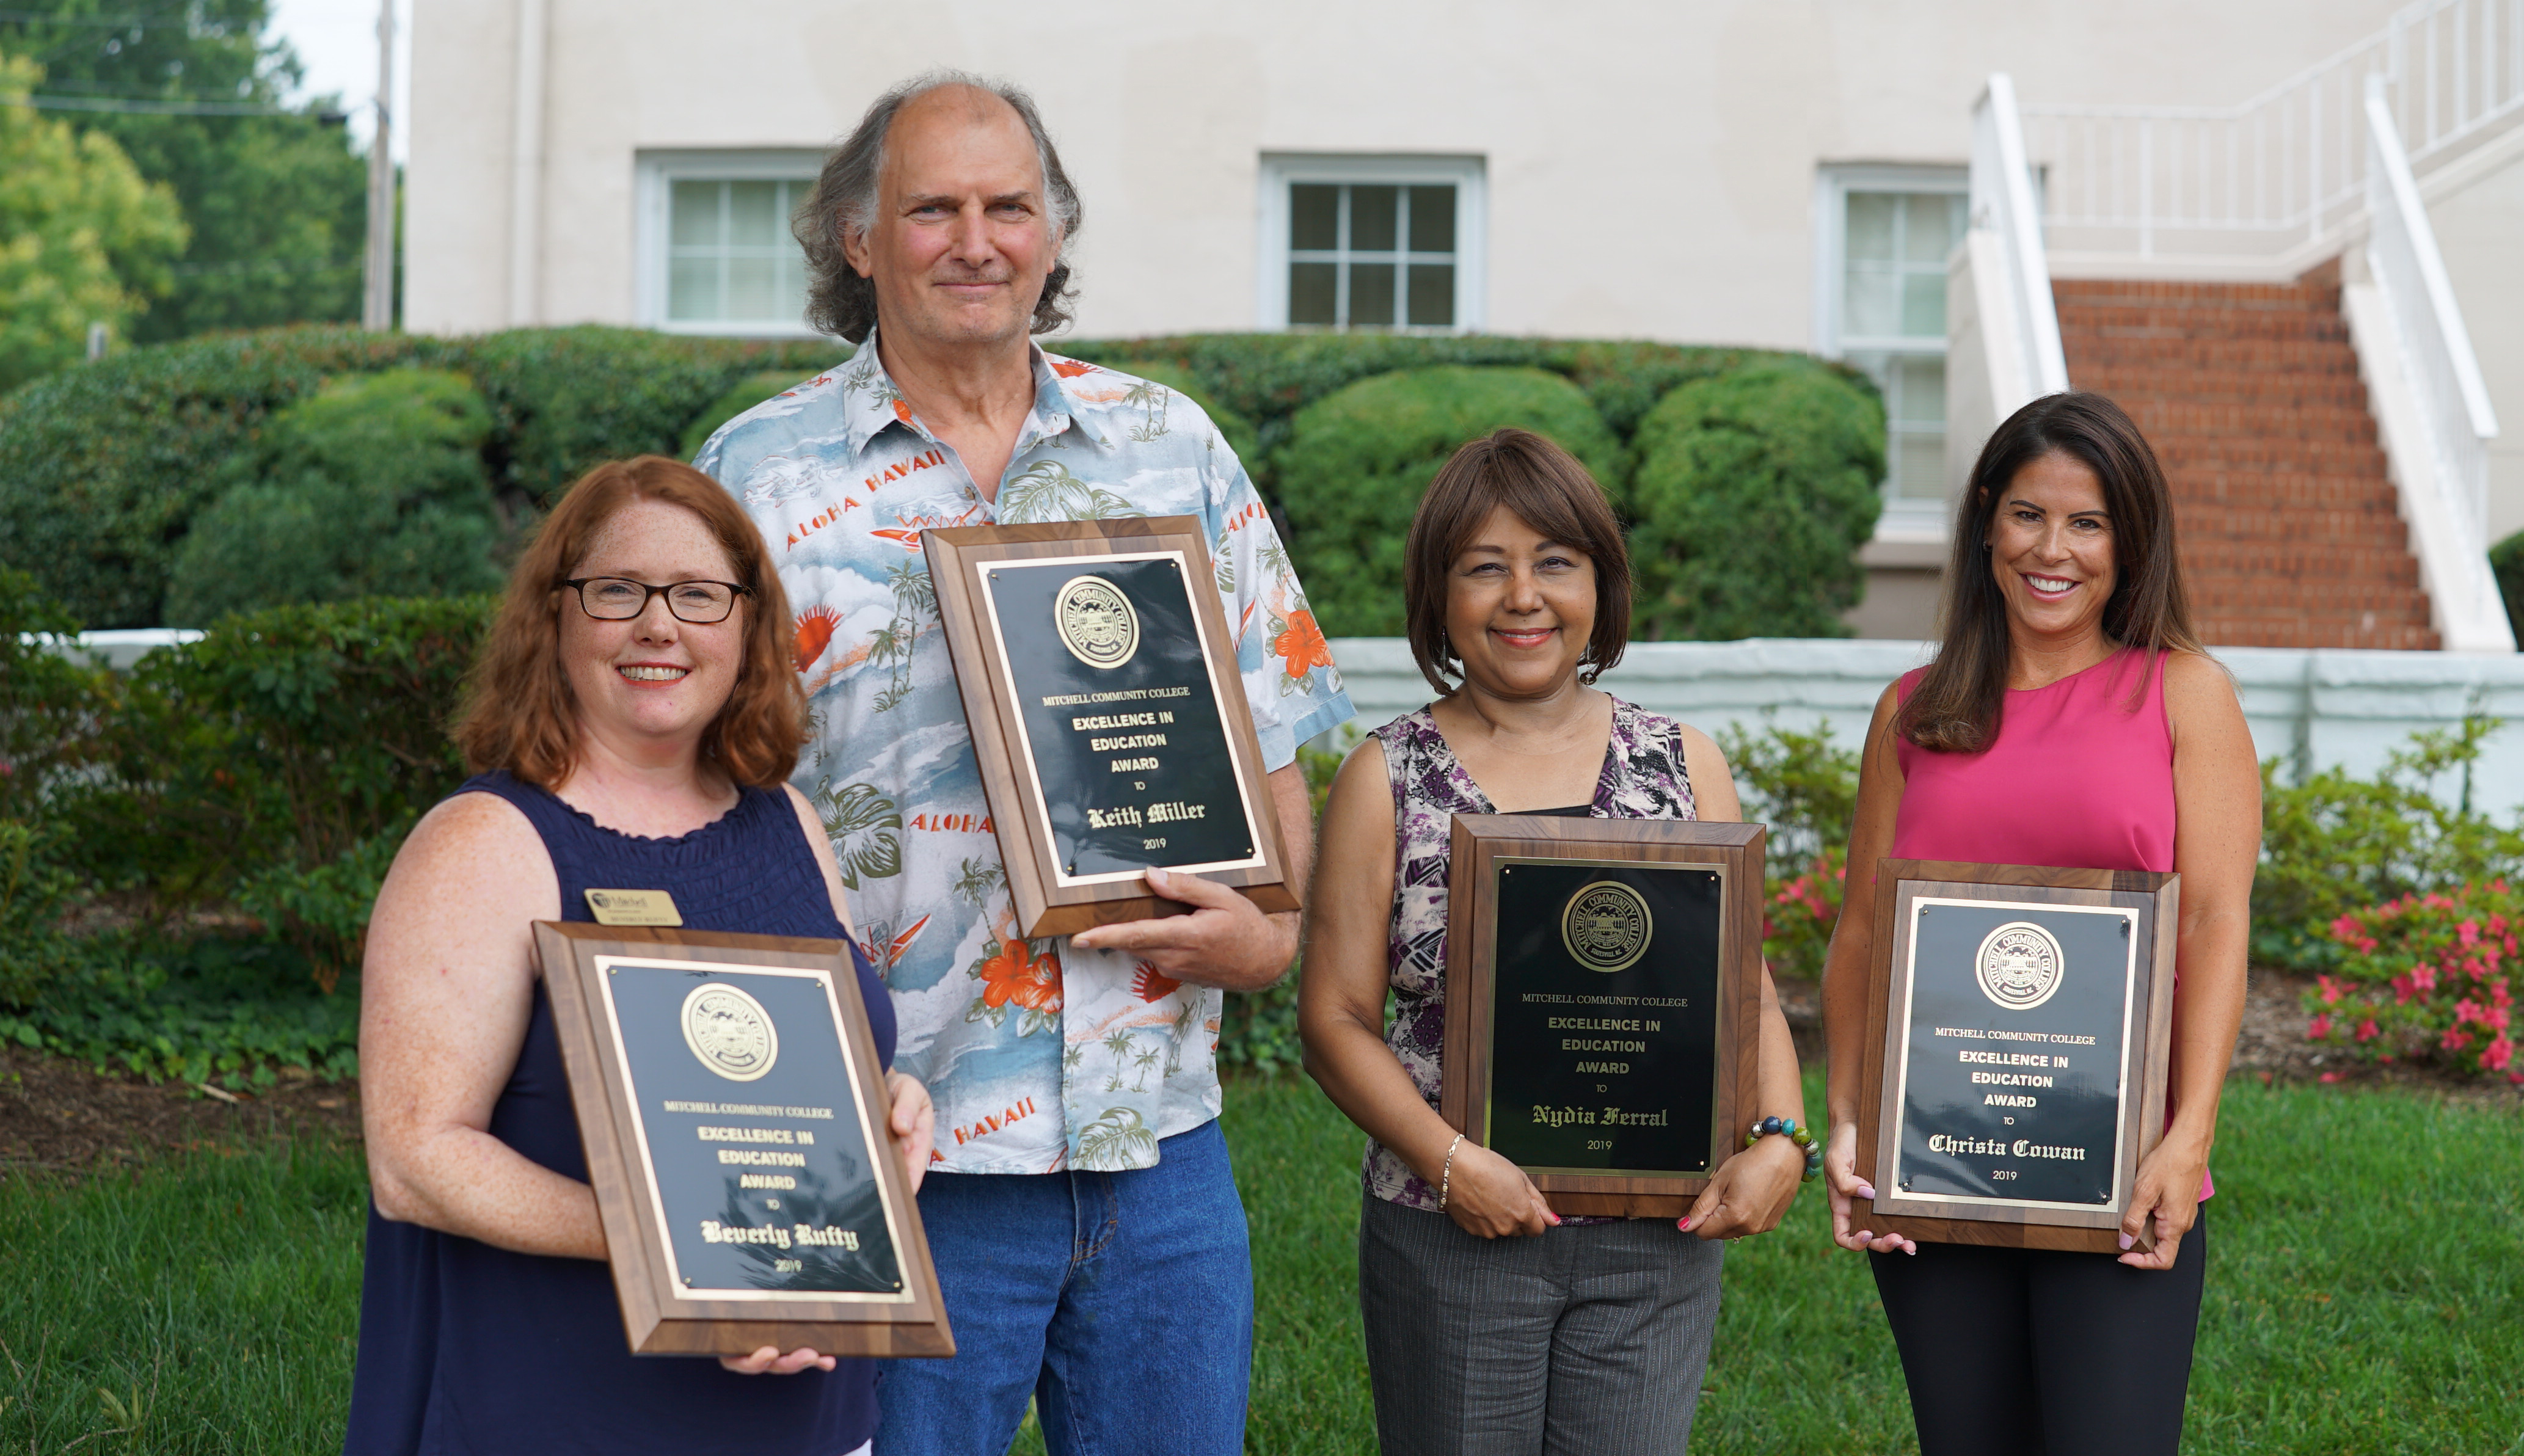 2019 R.D. Grier Excellence in Education award winners (L-R) Beverly Rufty, Keith Miller, Nydia Ferral, Christa Cowan (not pictured: Marcella James).